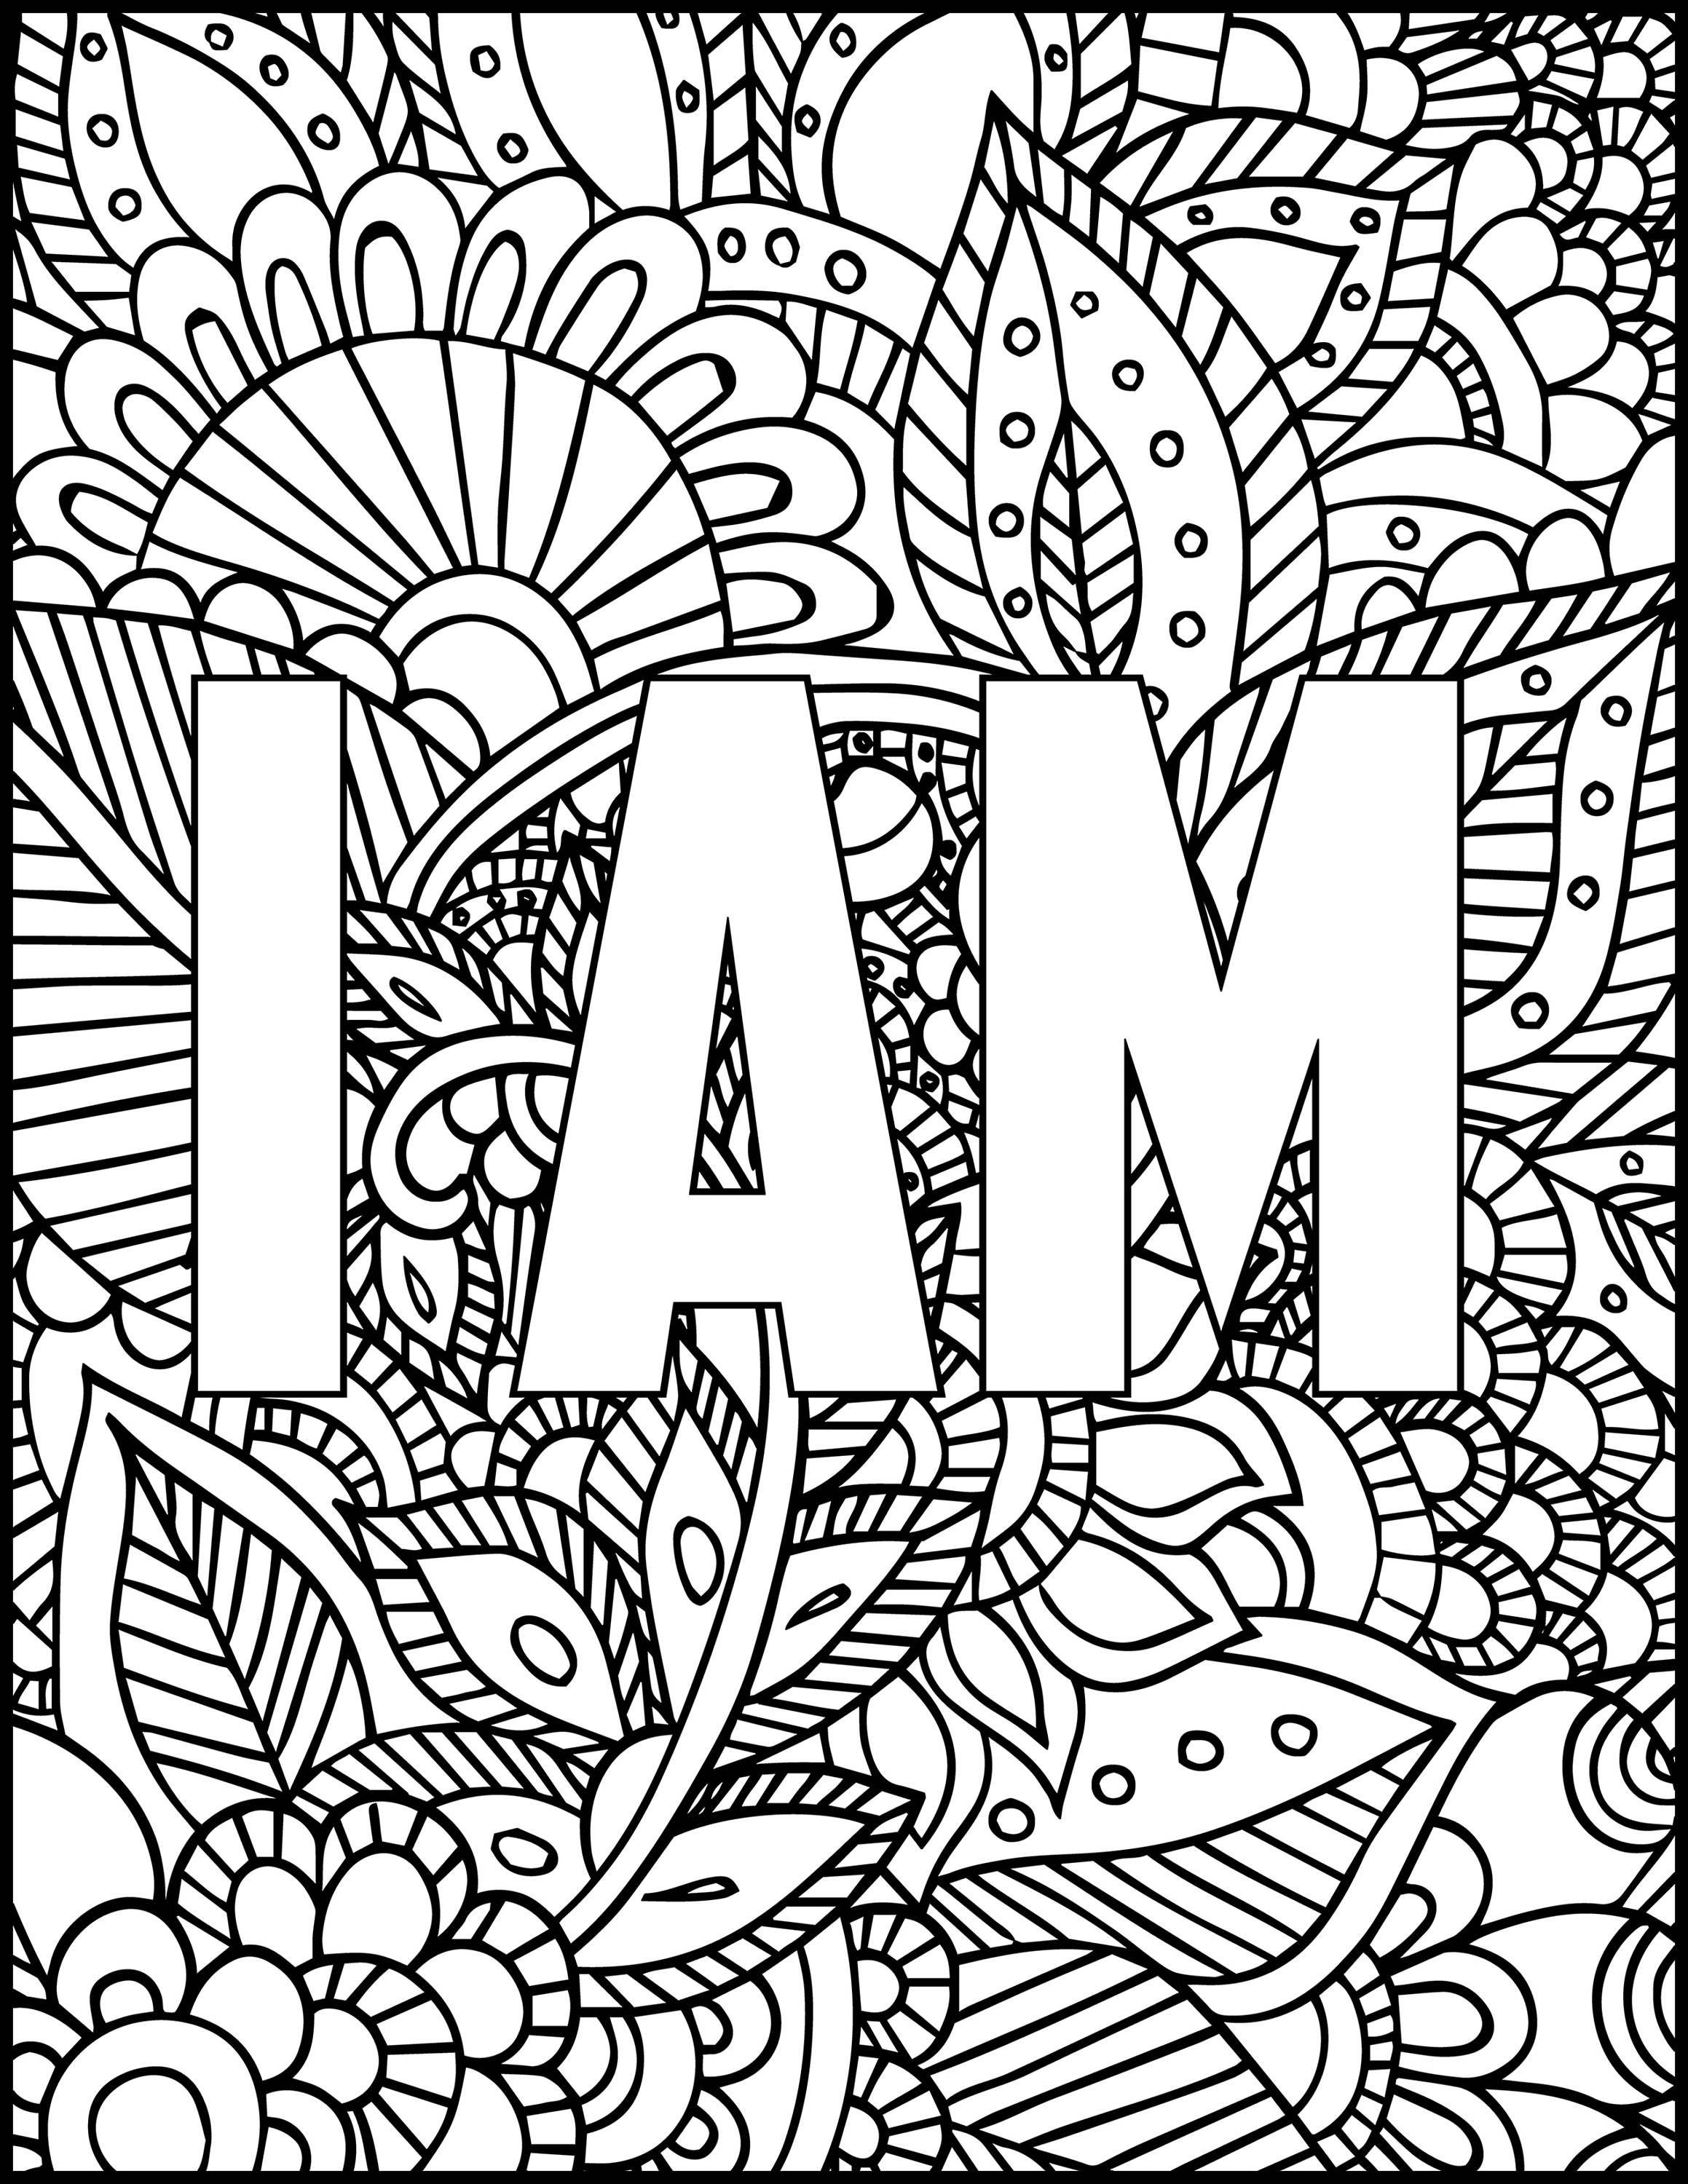 wwwfree coloring pagescom printable colouring book pages printable coloring pages wwwfree pagescom coloring